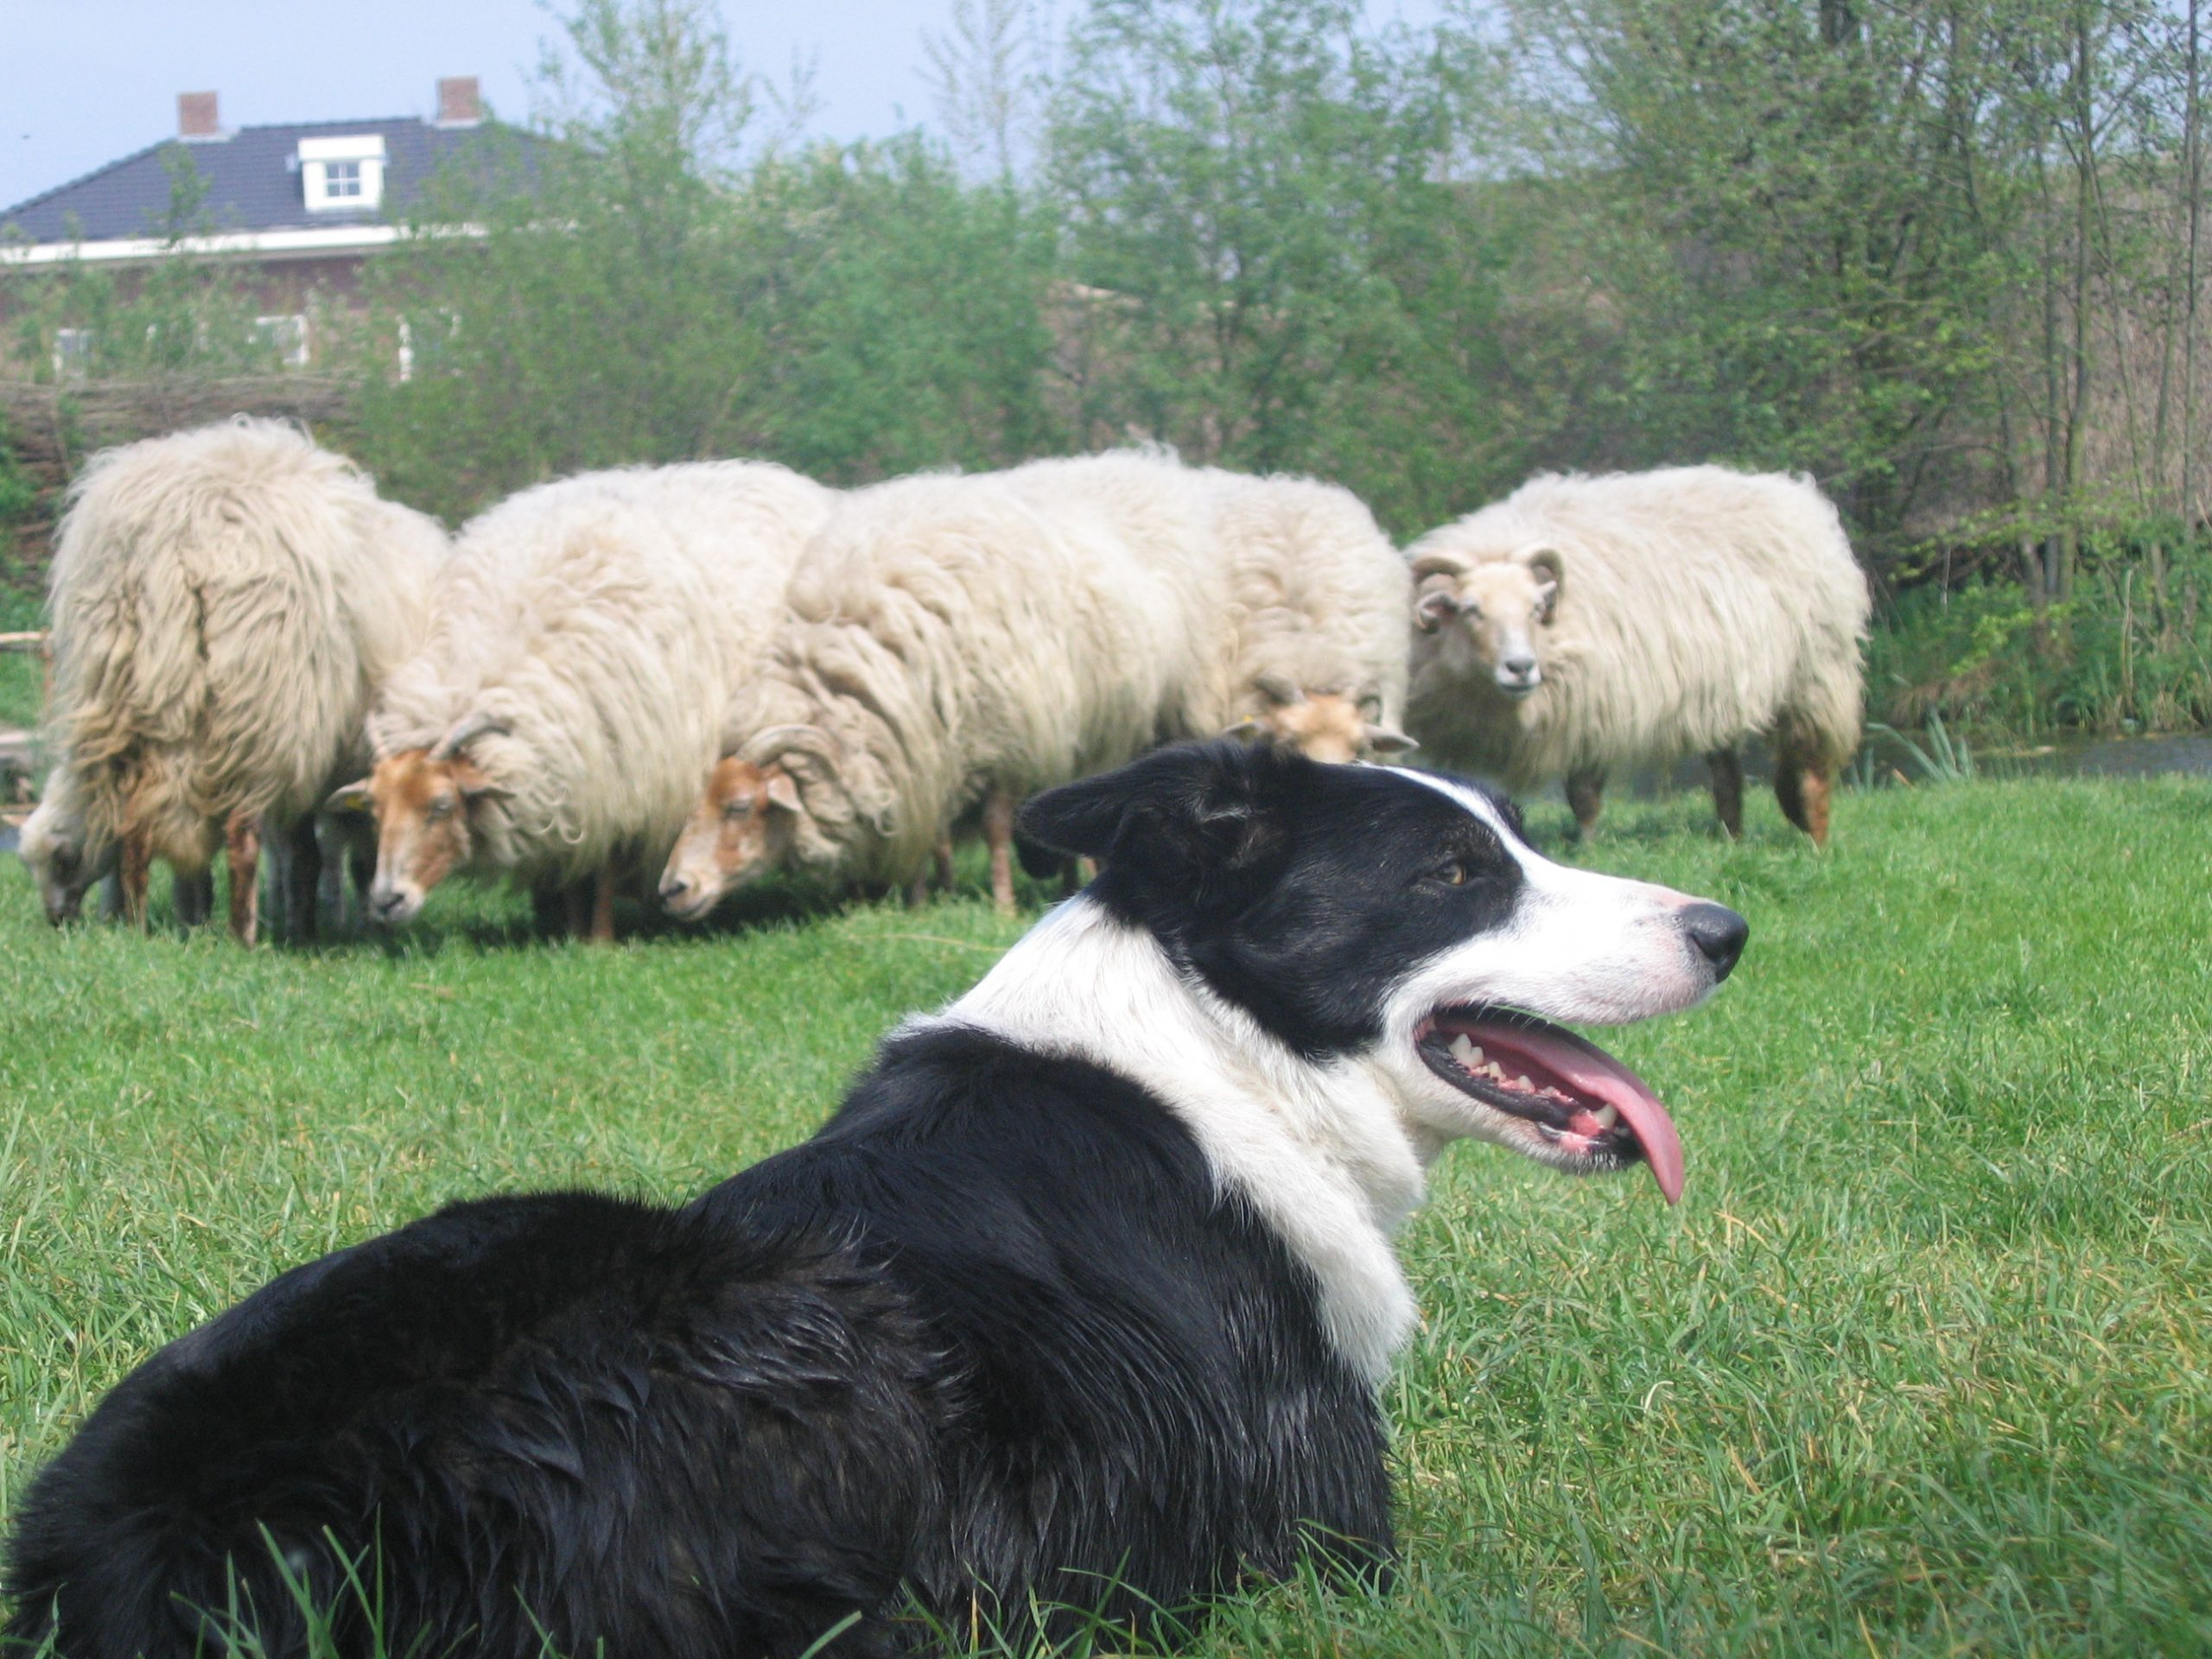 Sheepdog Breeds: 31 Sheepdogs and What You Want to Know About Them